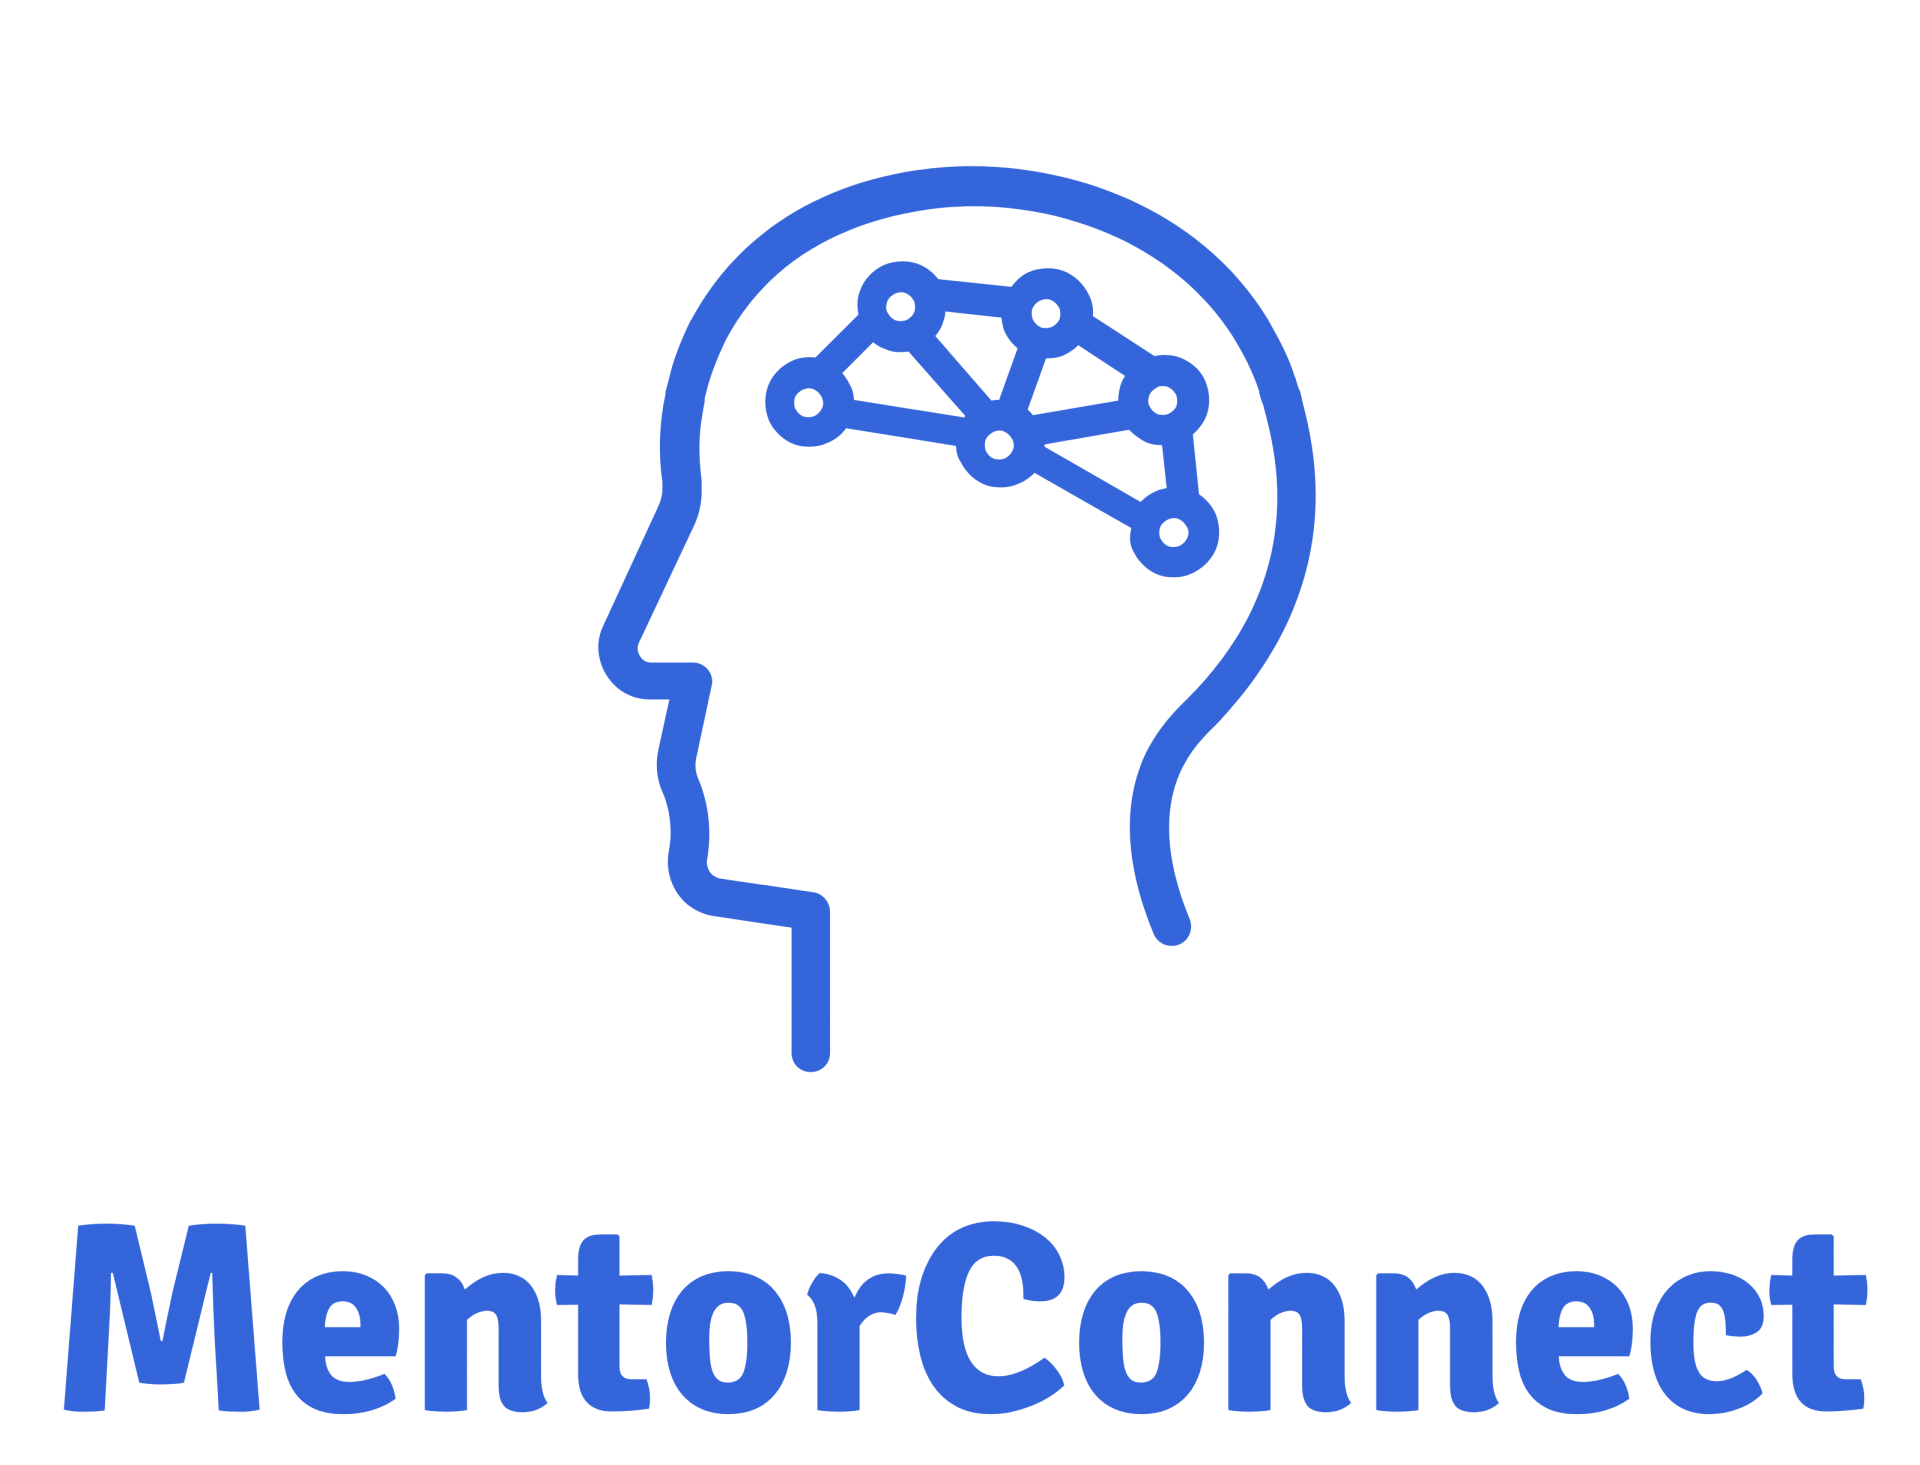 Mentorconnect